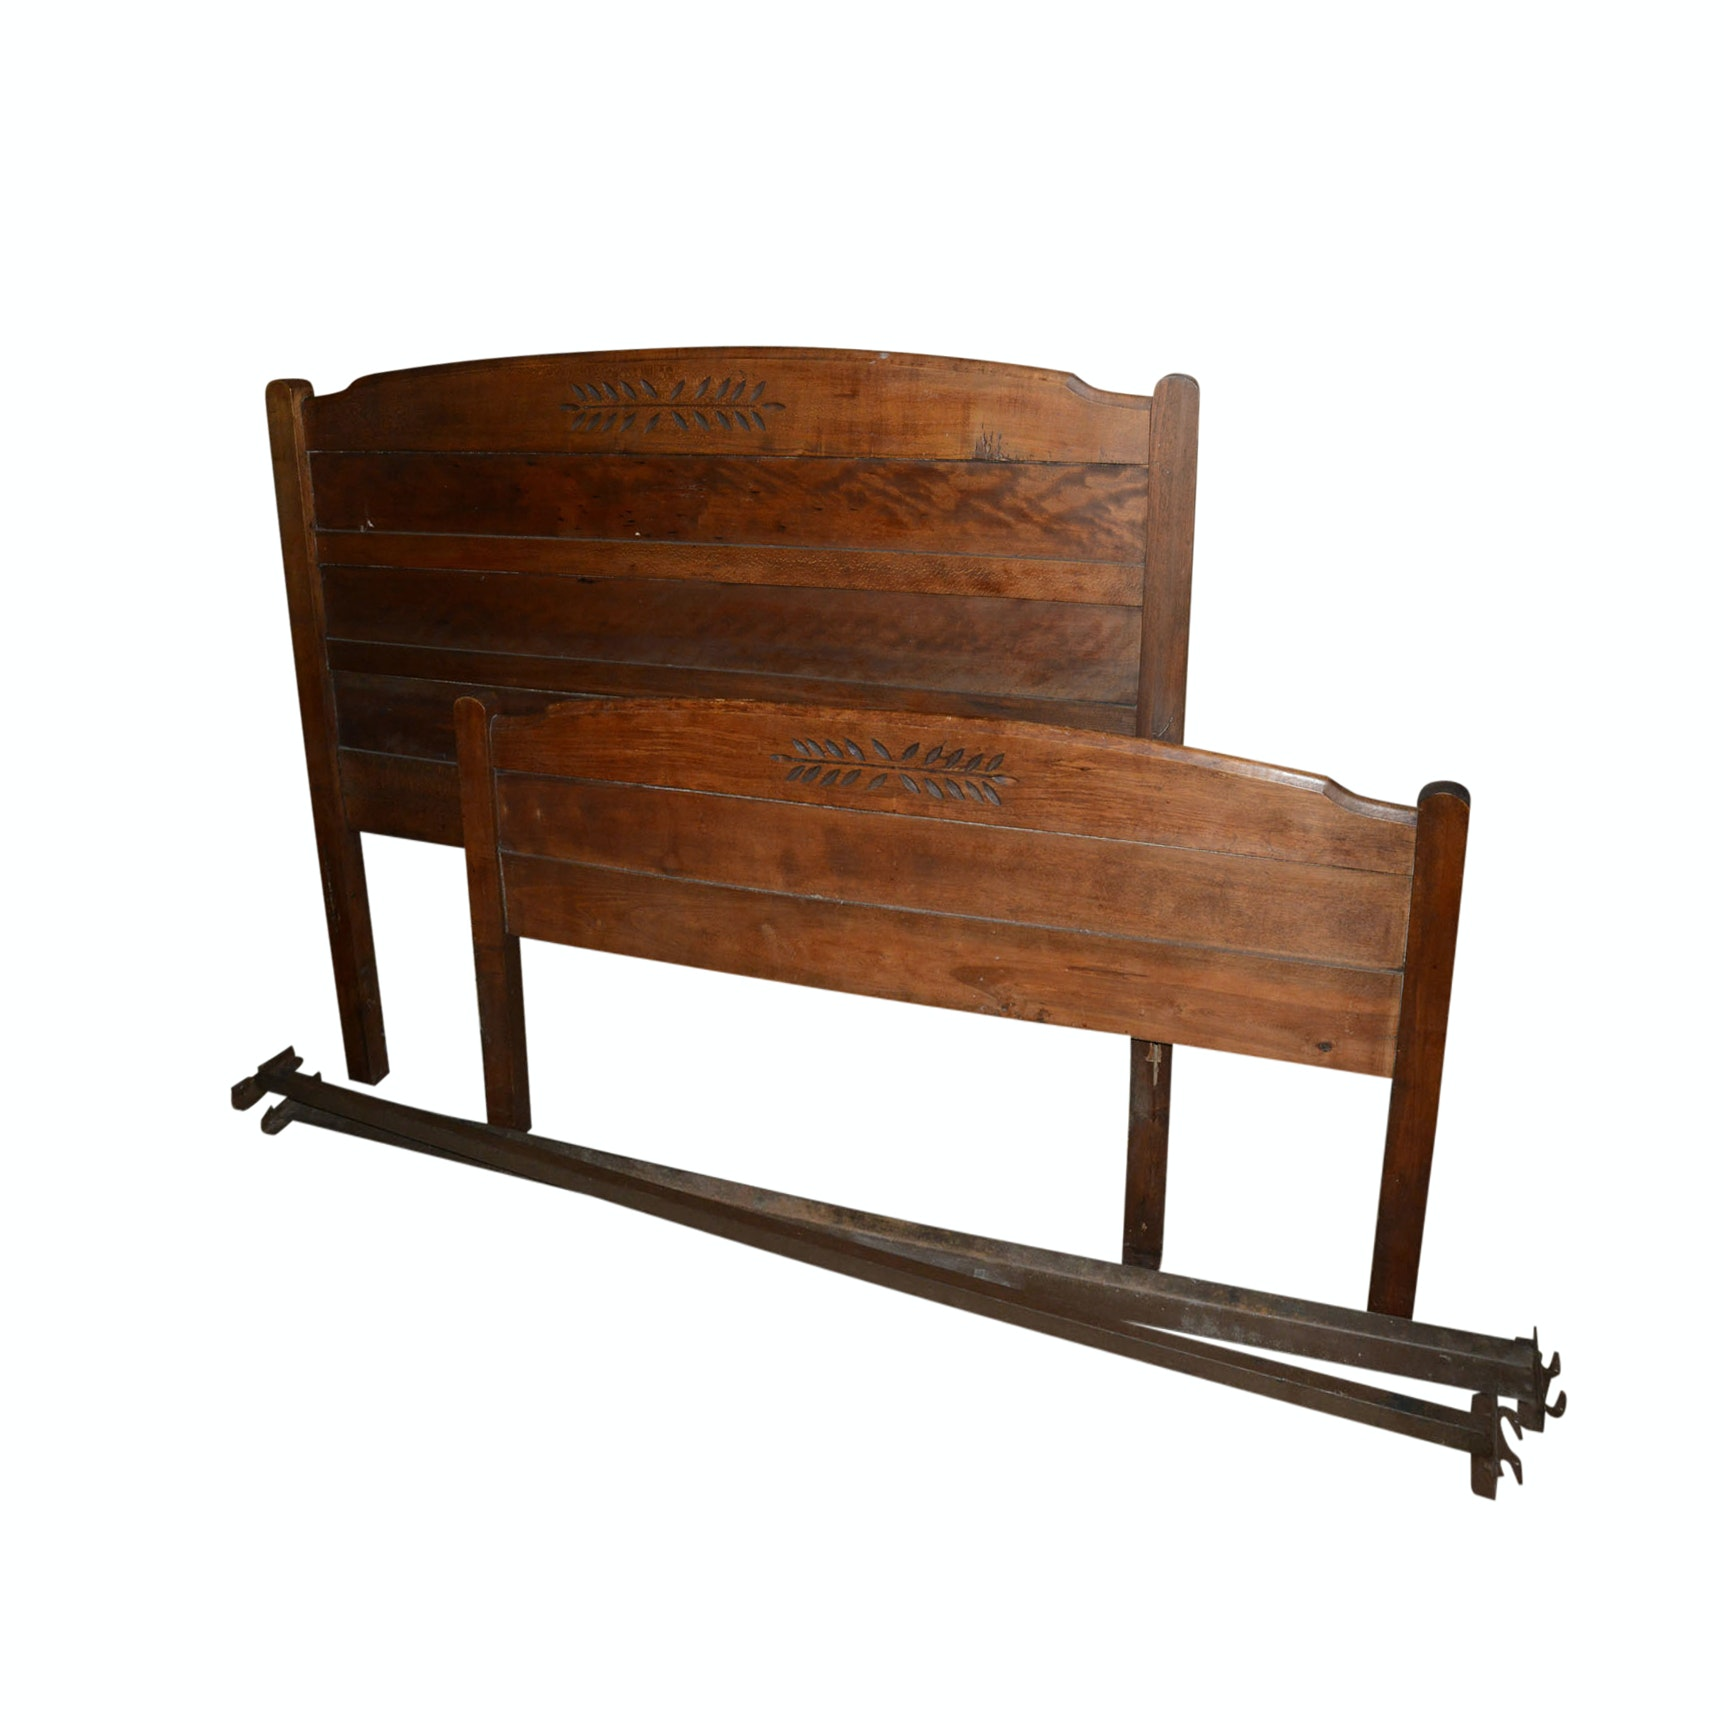 Vintage Country Style Carved Pine Bed